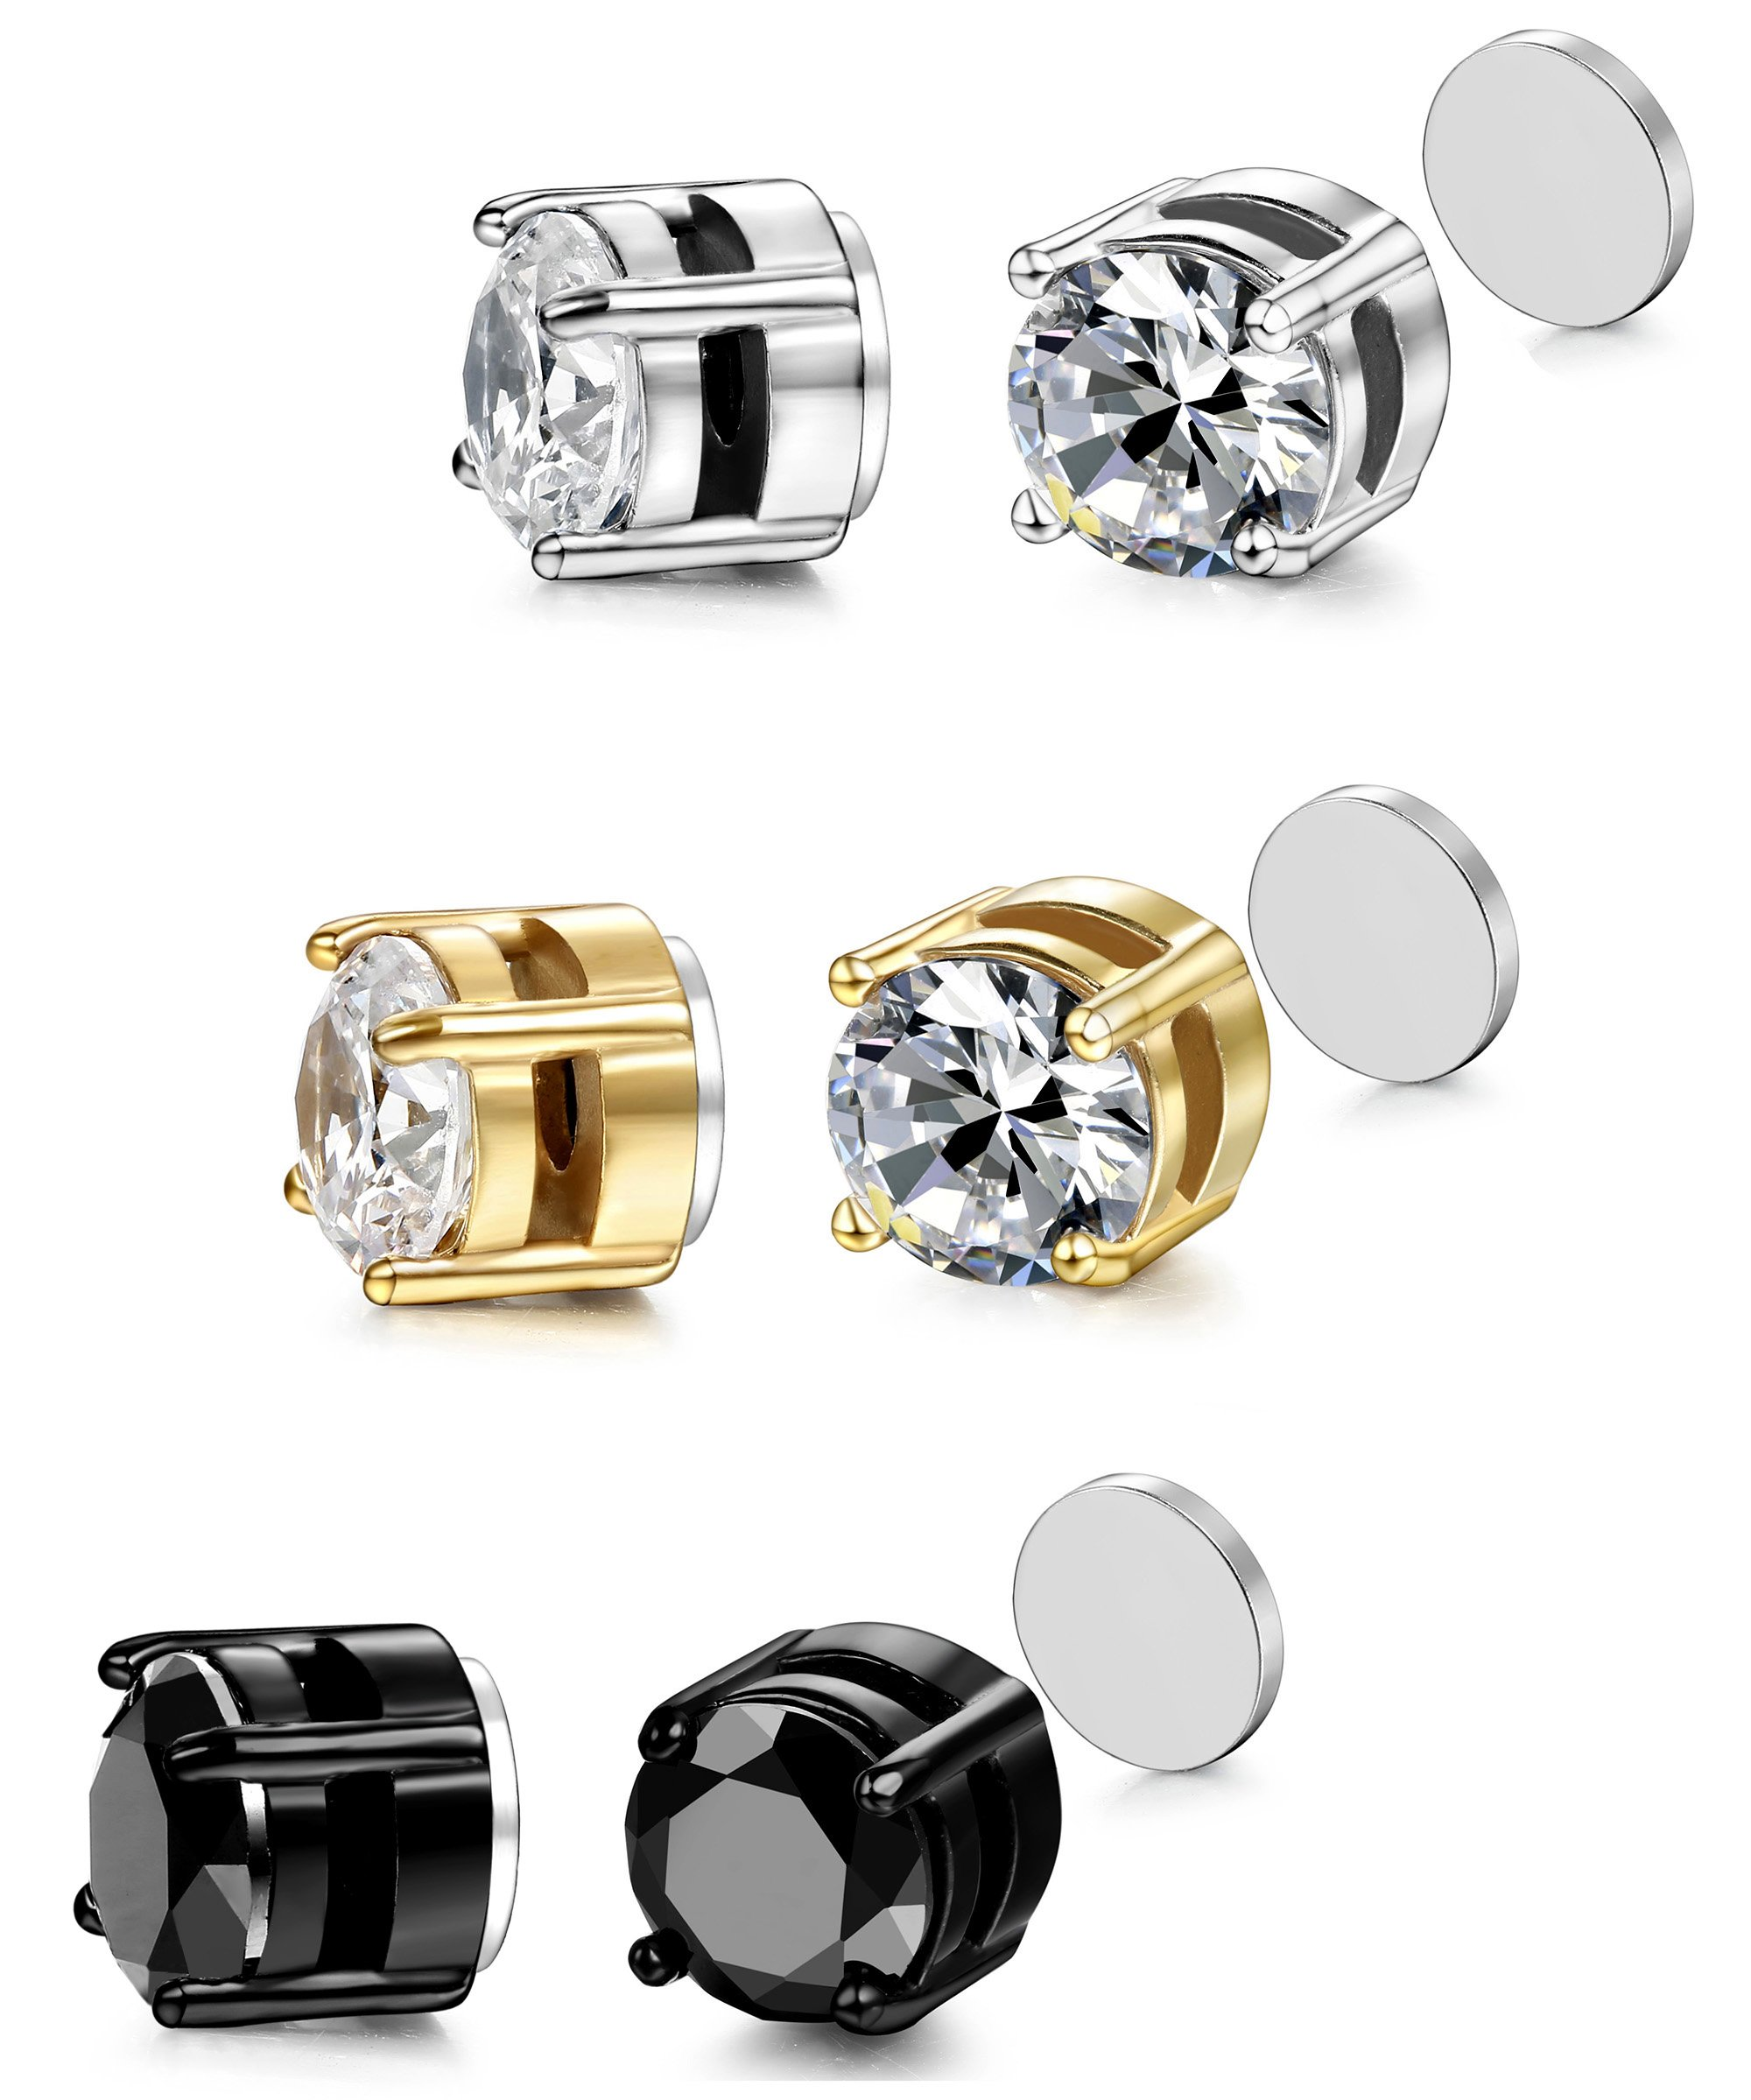 ORAZIO 3 Pairs Stainless Steel Magnetic Stud Earrings for Womens Mens Non Piercing Cubic Zirconia 8mm by ORAZIO (Image #5)